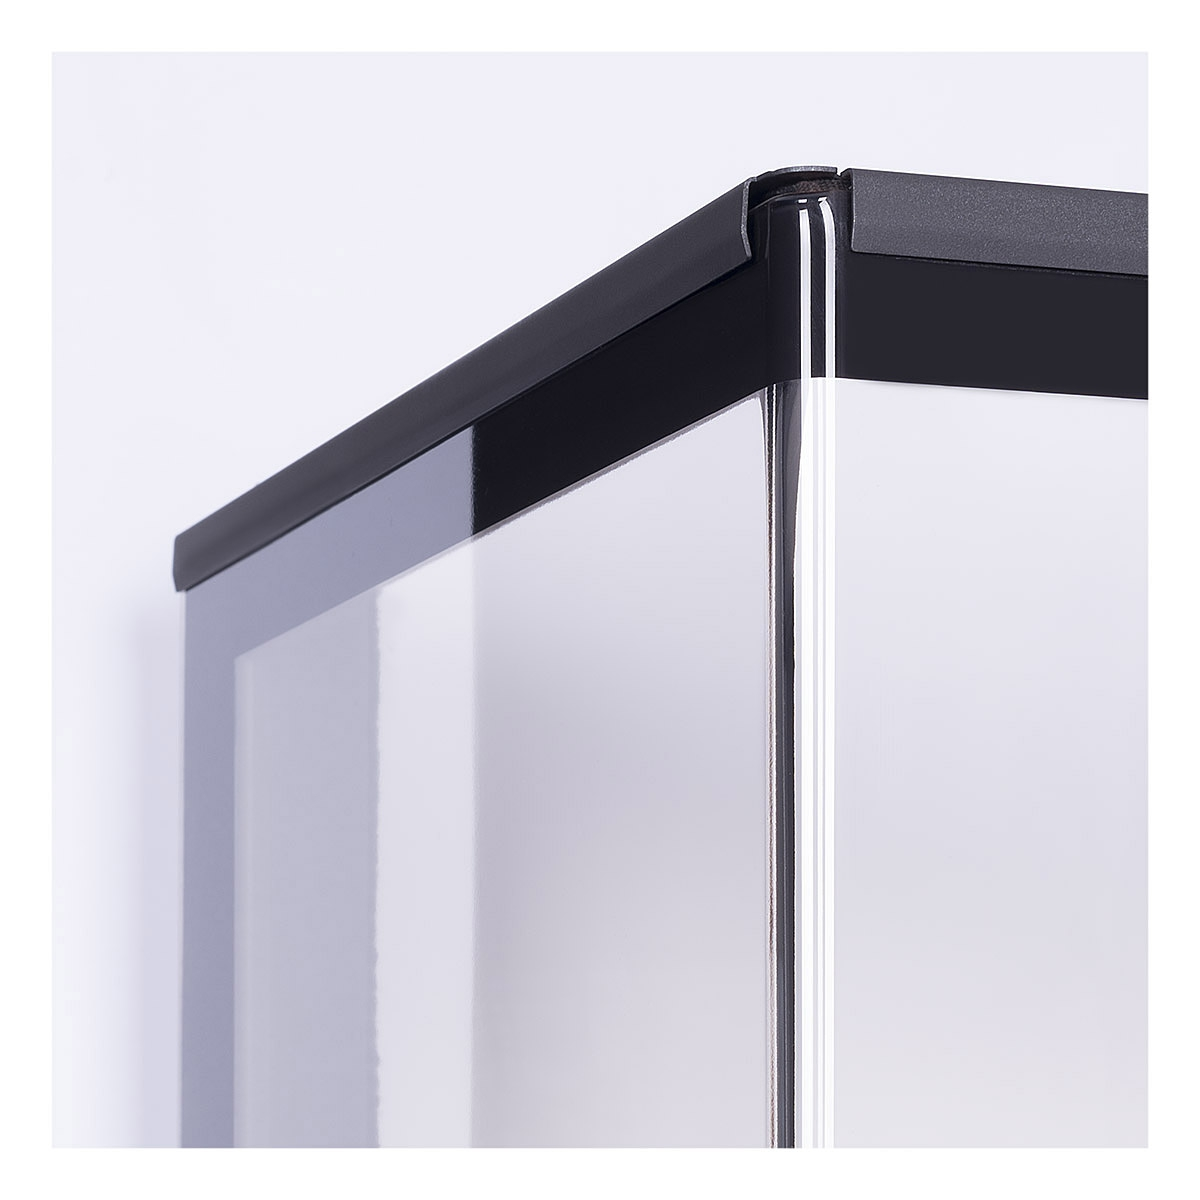 HEAT C 3g L 50.52.31.01(21) - hot-air three-sided fireplace insert with lifting door and bent (split) glazing